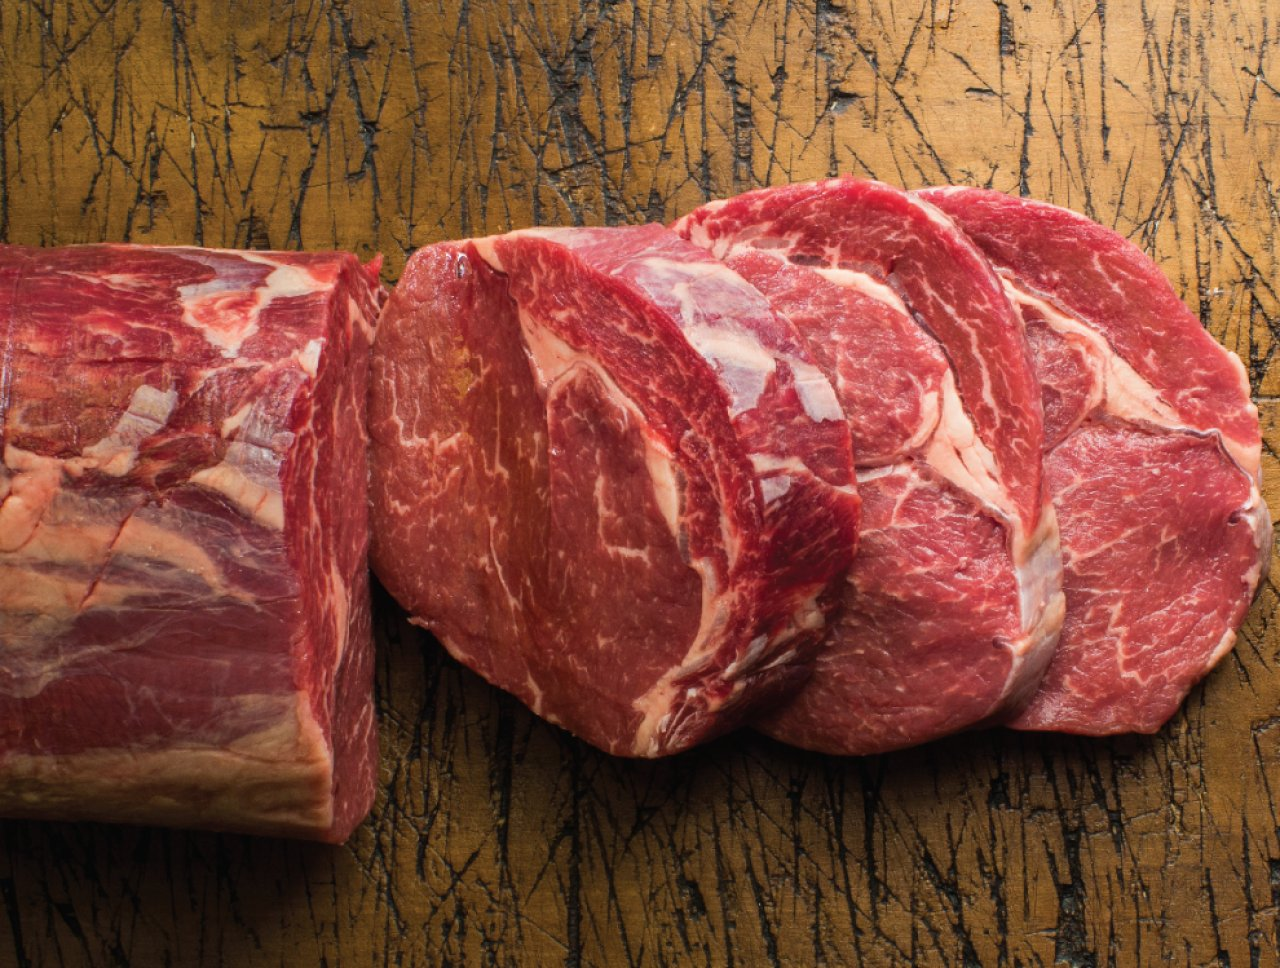 Beck & Bulow - Premium Meat Delivery For Health & Happiness